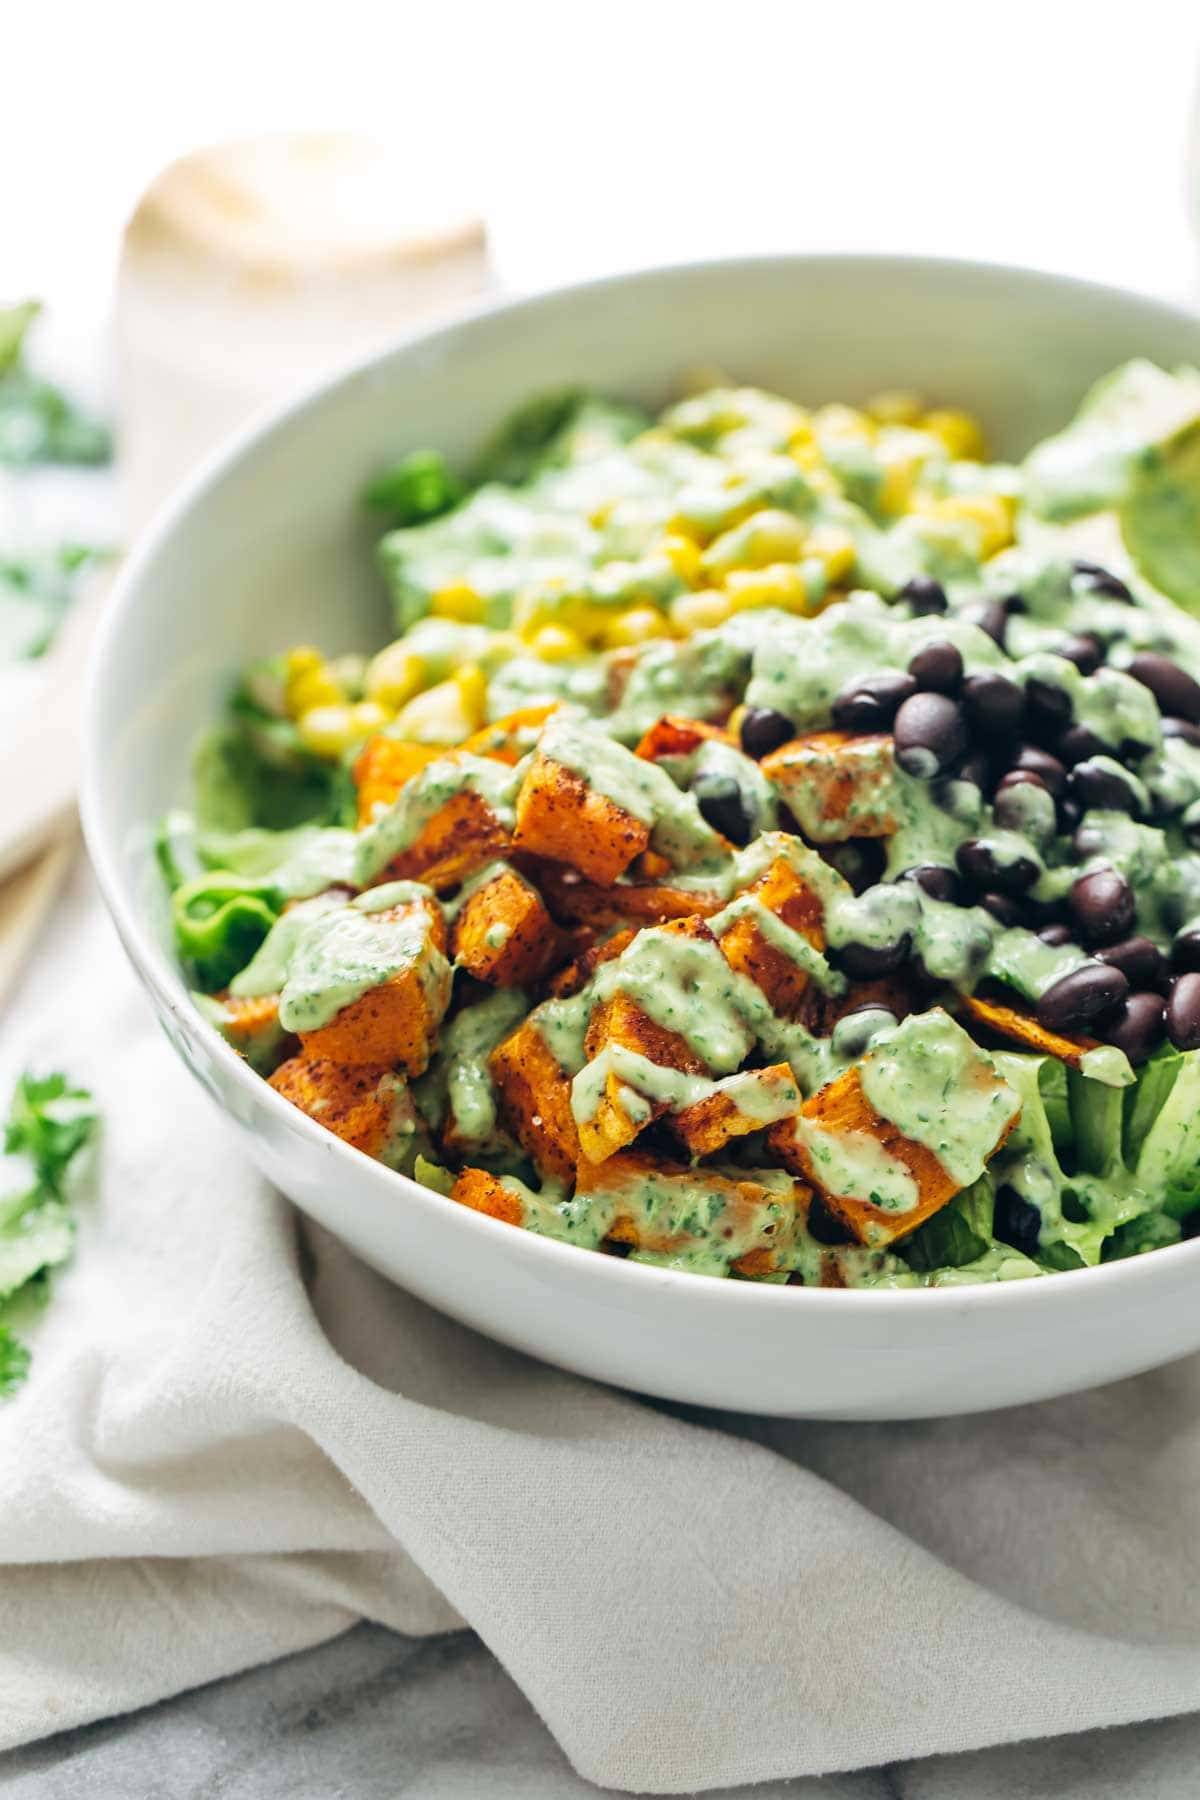 Southwestern Salad in a white bowl.